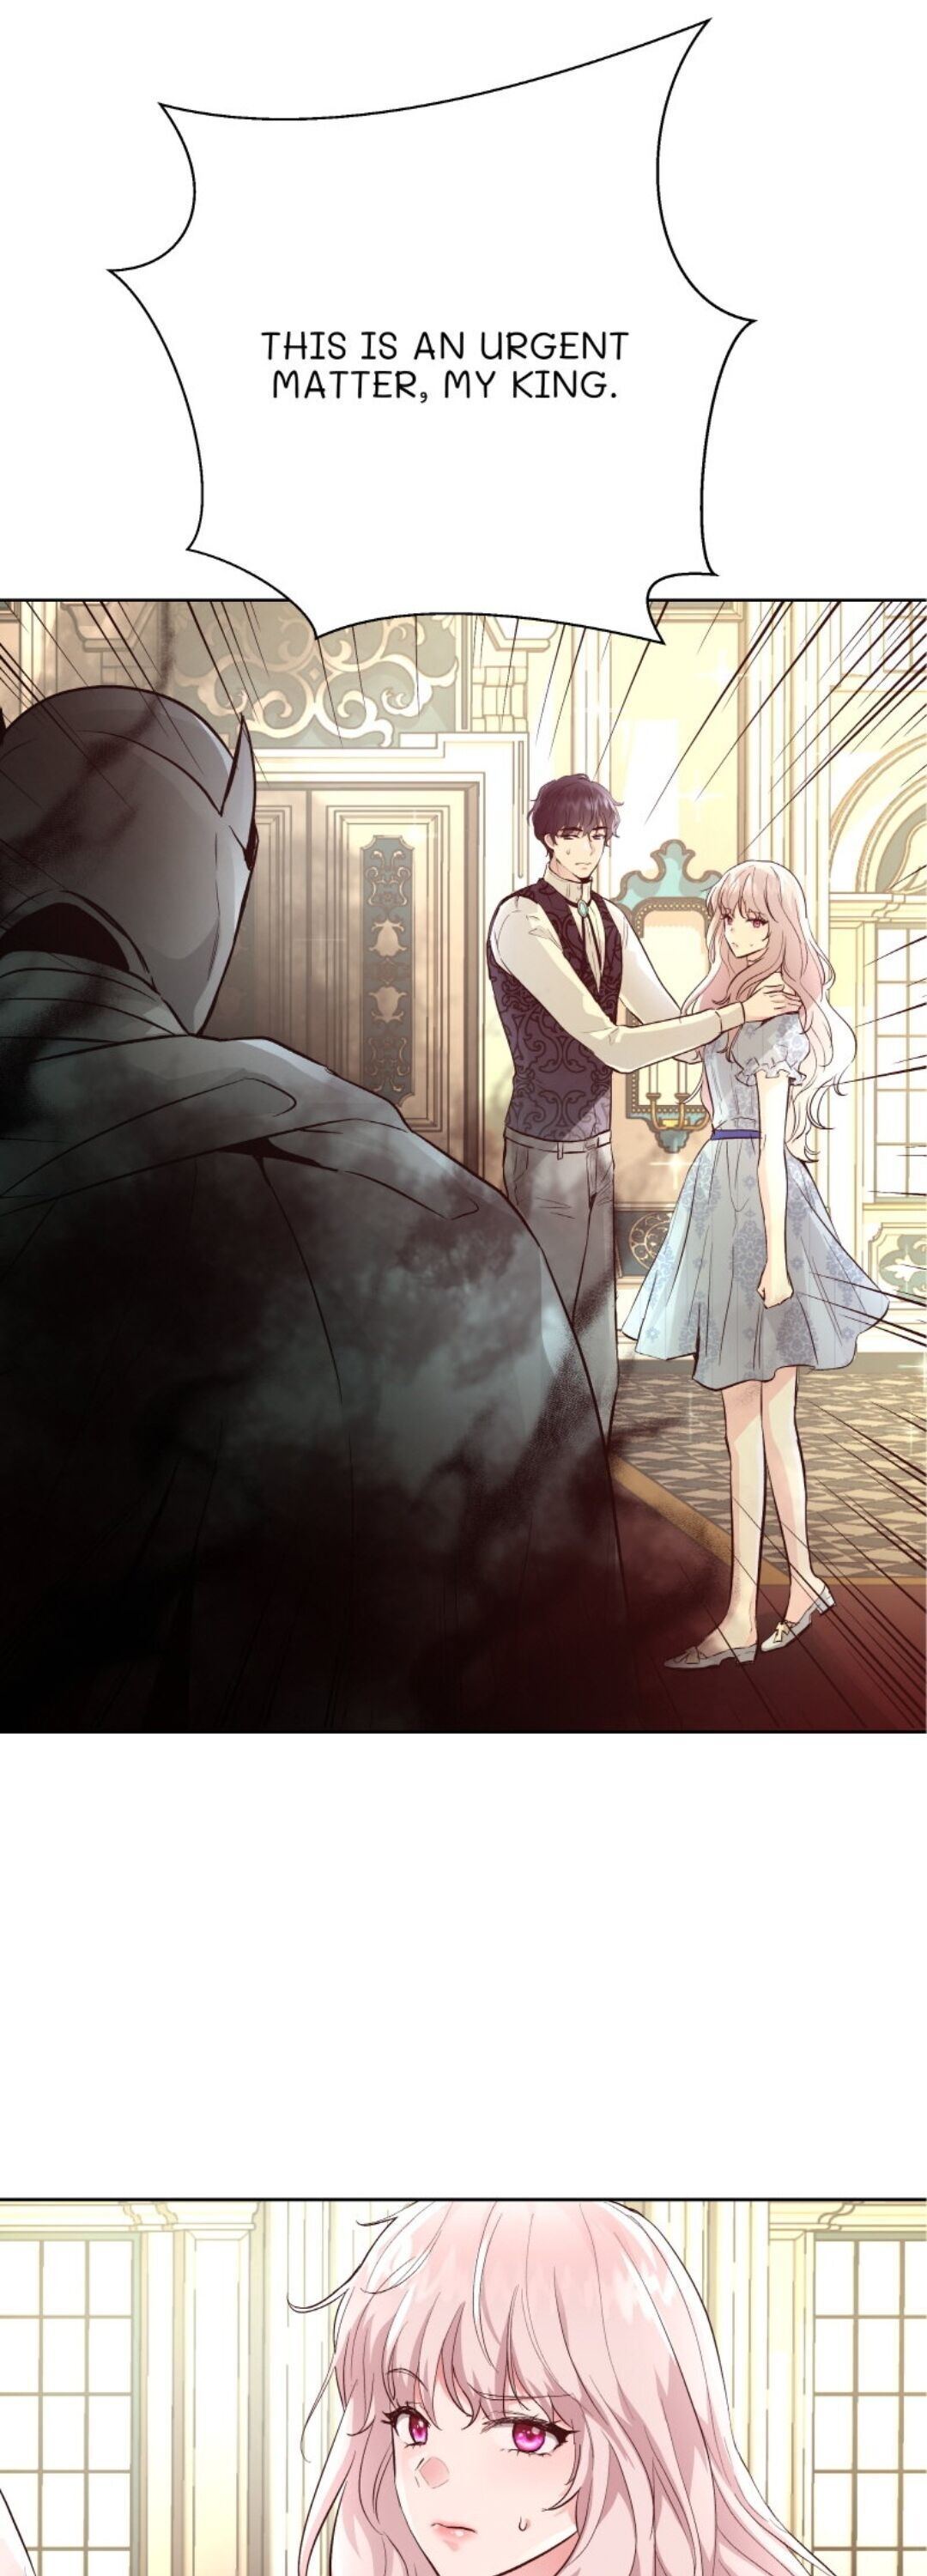 5500 Shades Of The Demon King - chapter 17 - #1